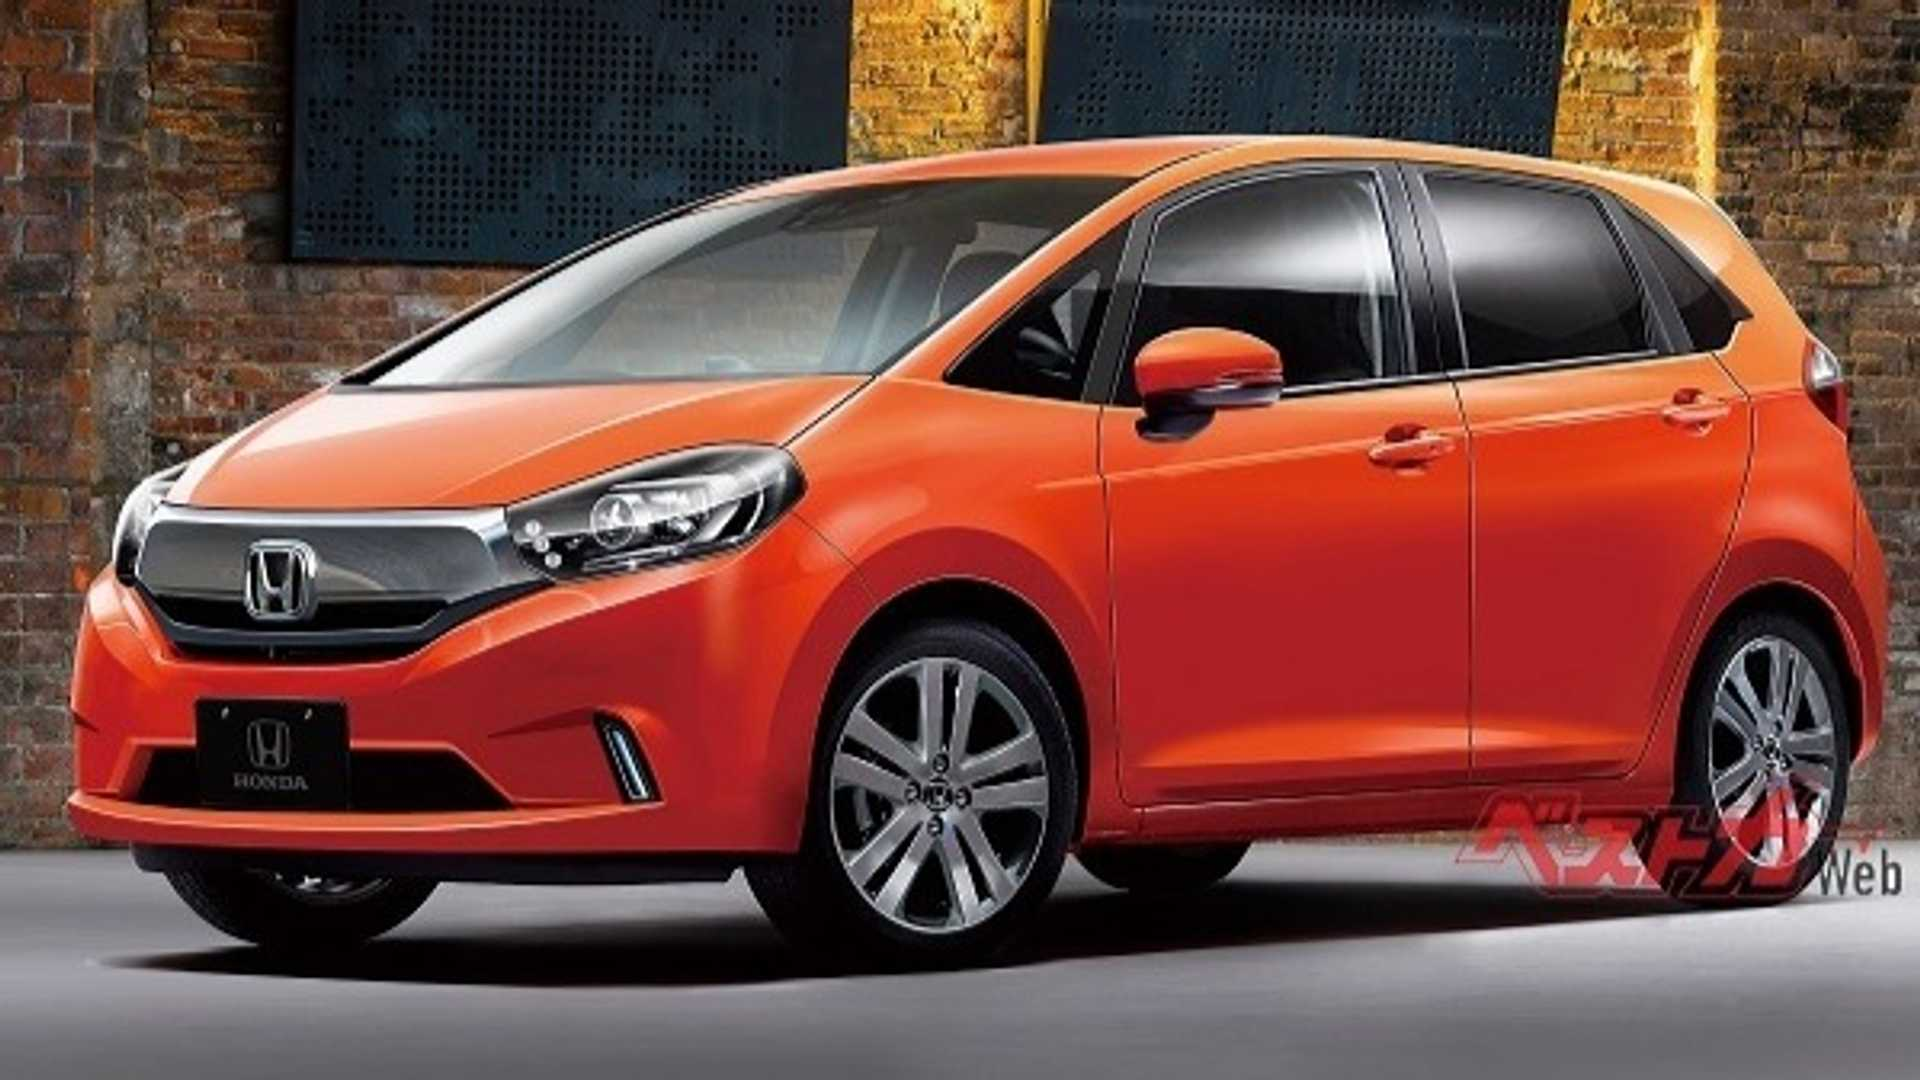 65 All New Honda Jazz 2020 Malaysia New Review by Honda Jazz 2020 Malaysia